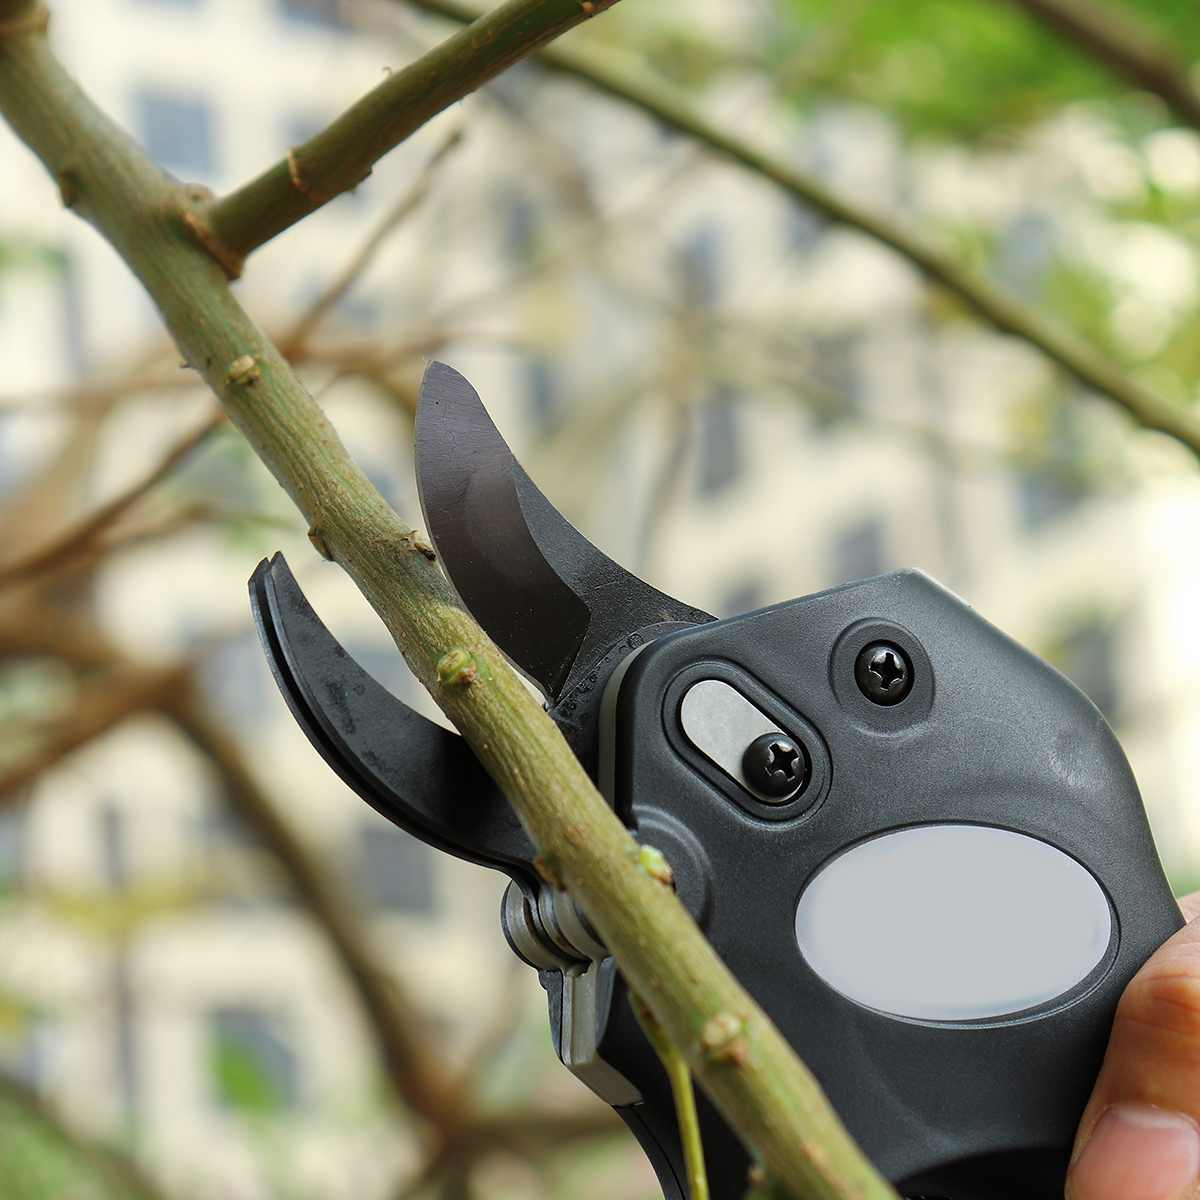 12V Wireless Electric Rechargeable Garden Scissors for Pruning Branches and stems with 4 Li-ion Battery 17